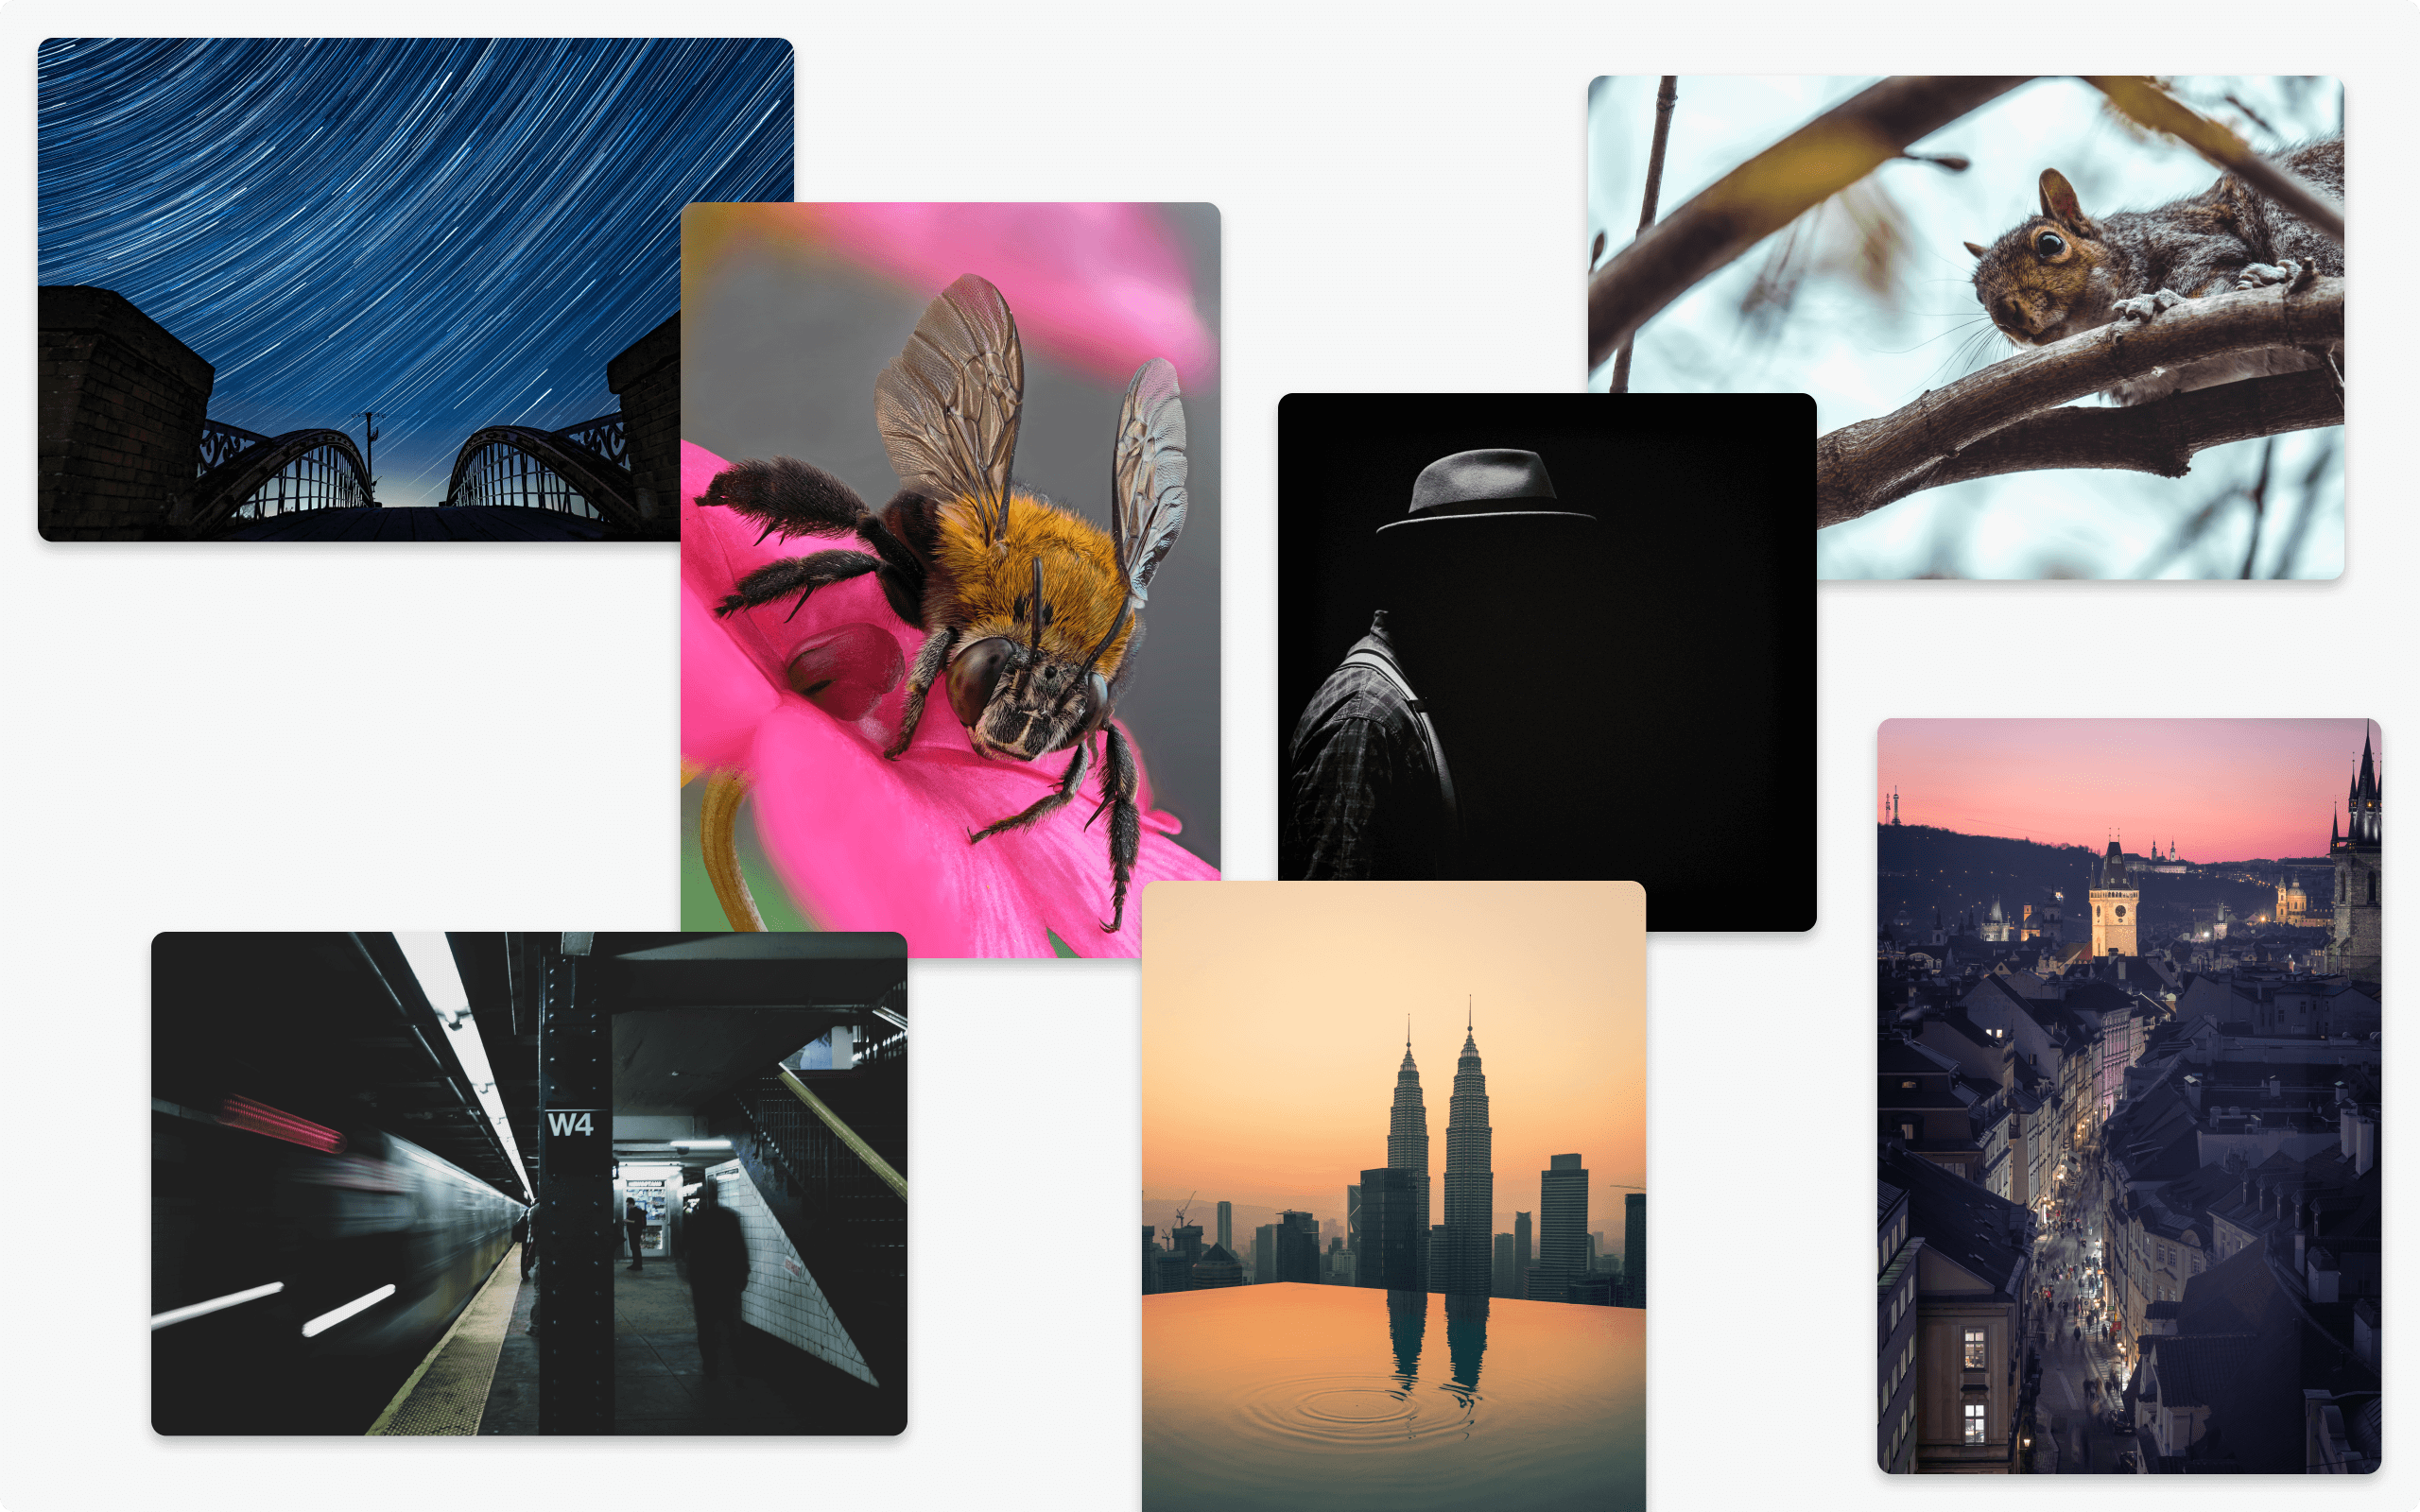 Montage of images captured with mirrorless camers